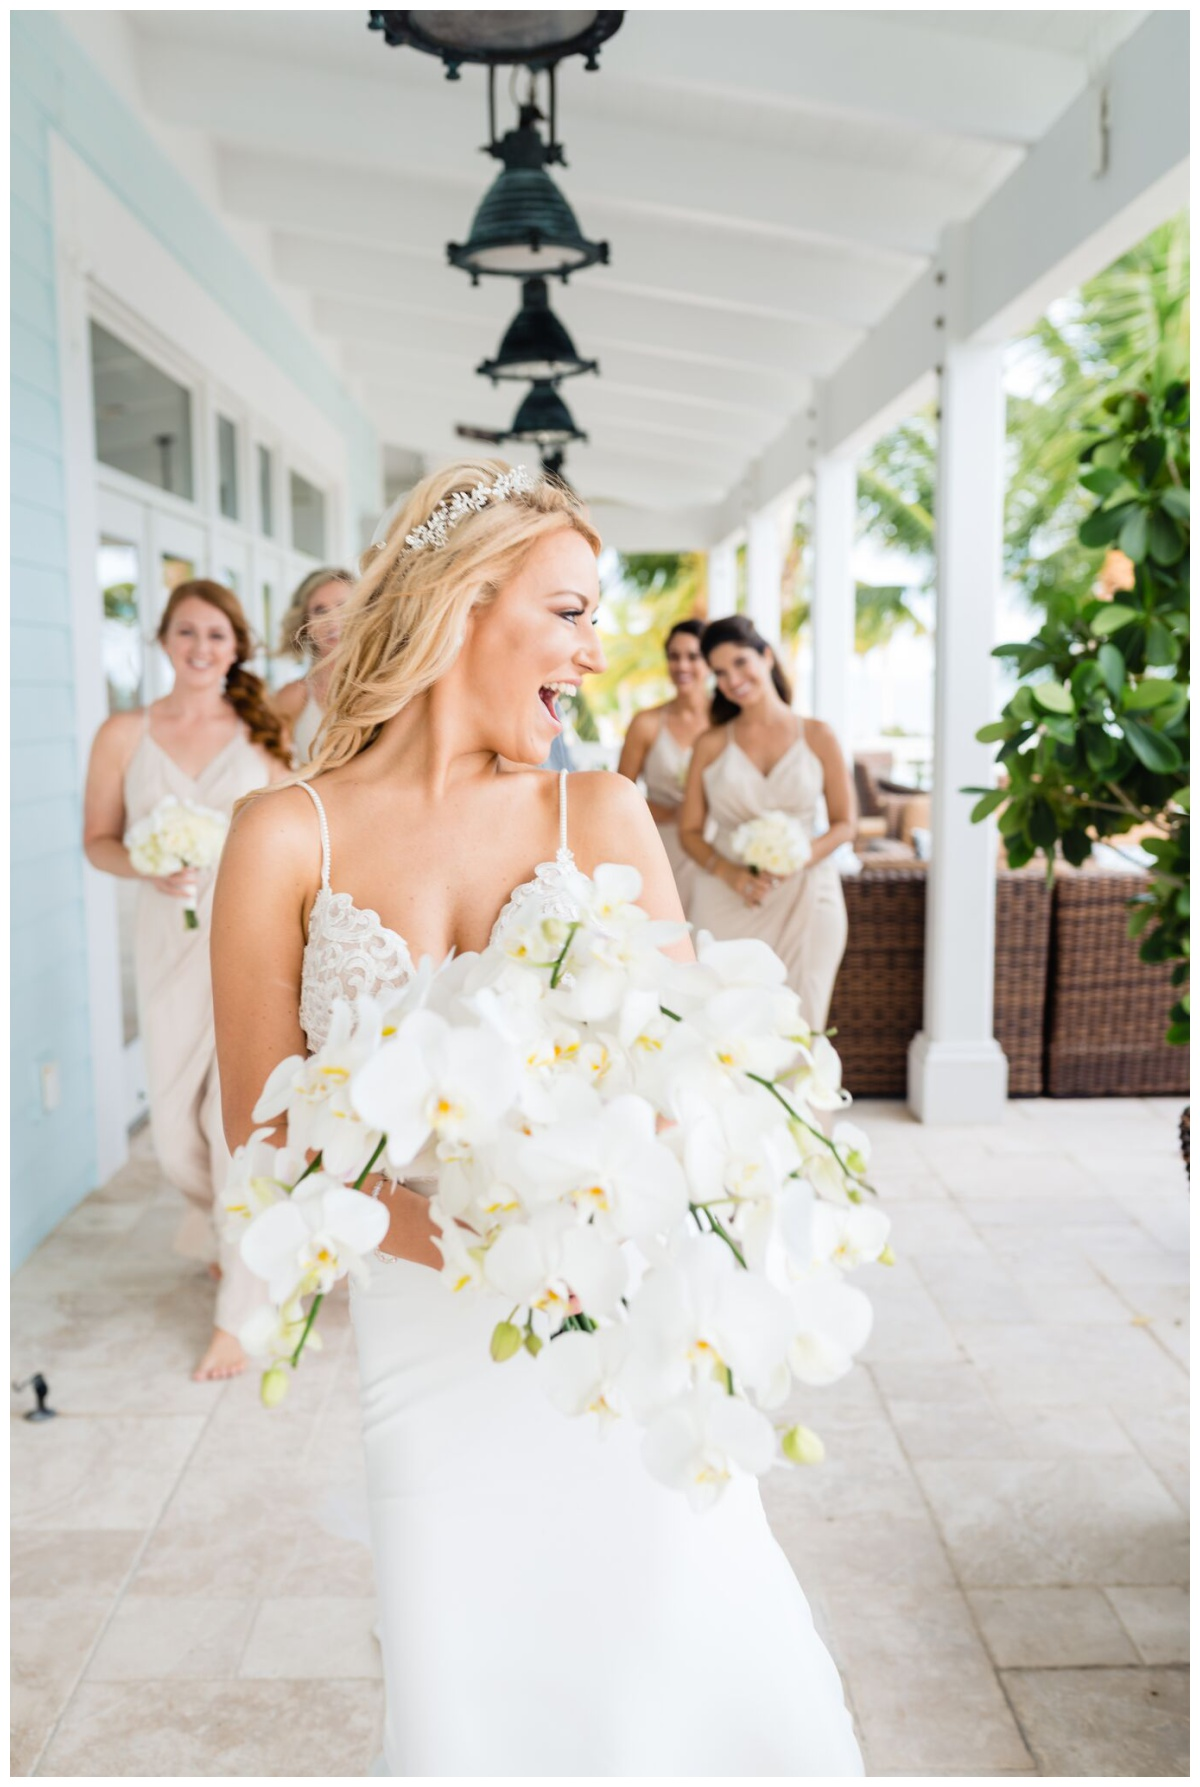 The Caribbean Resort wedding